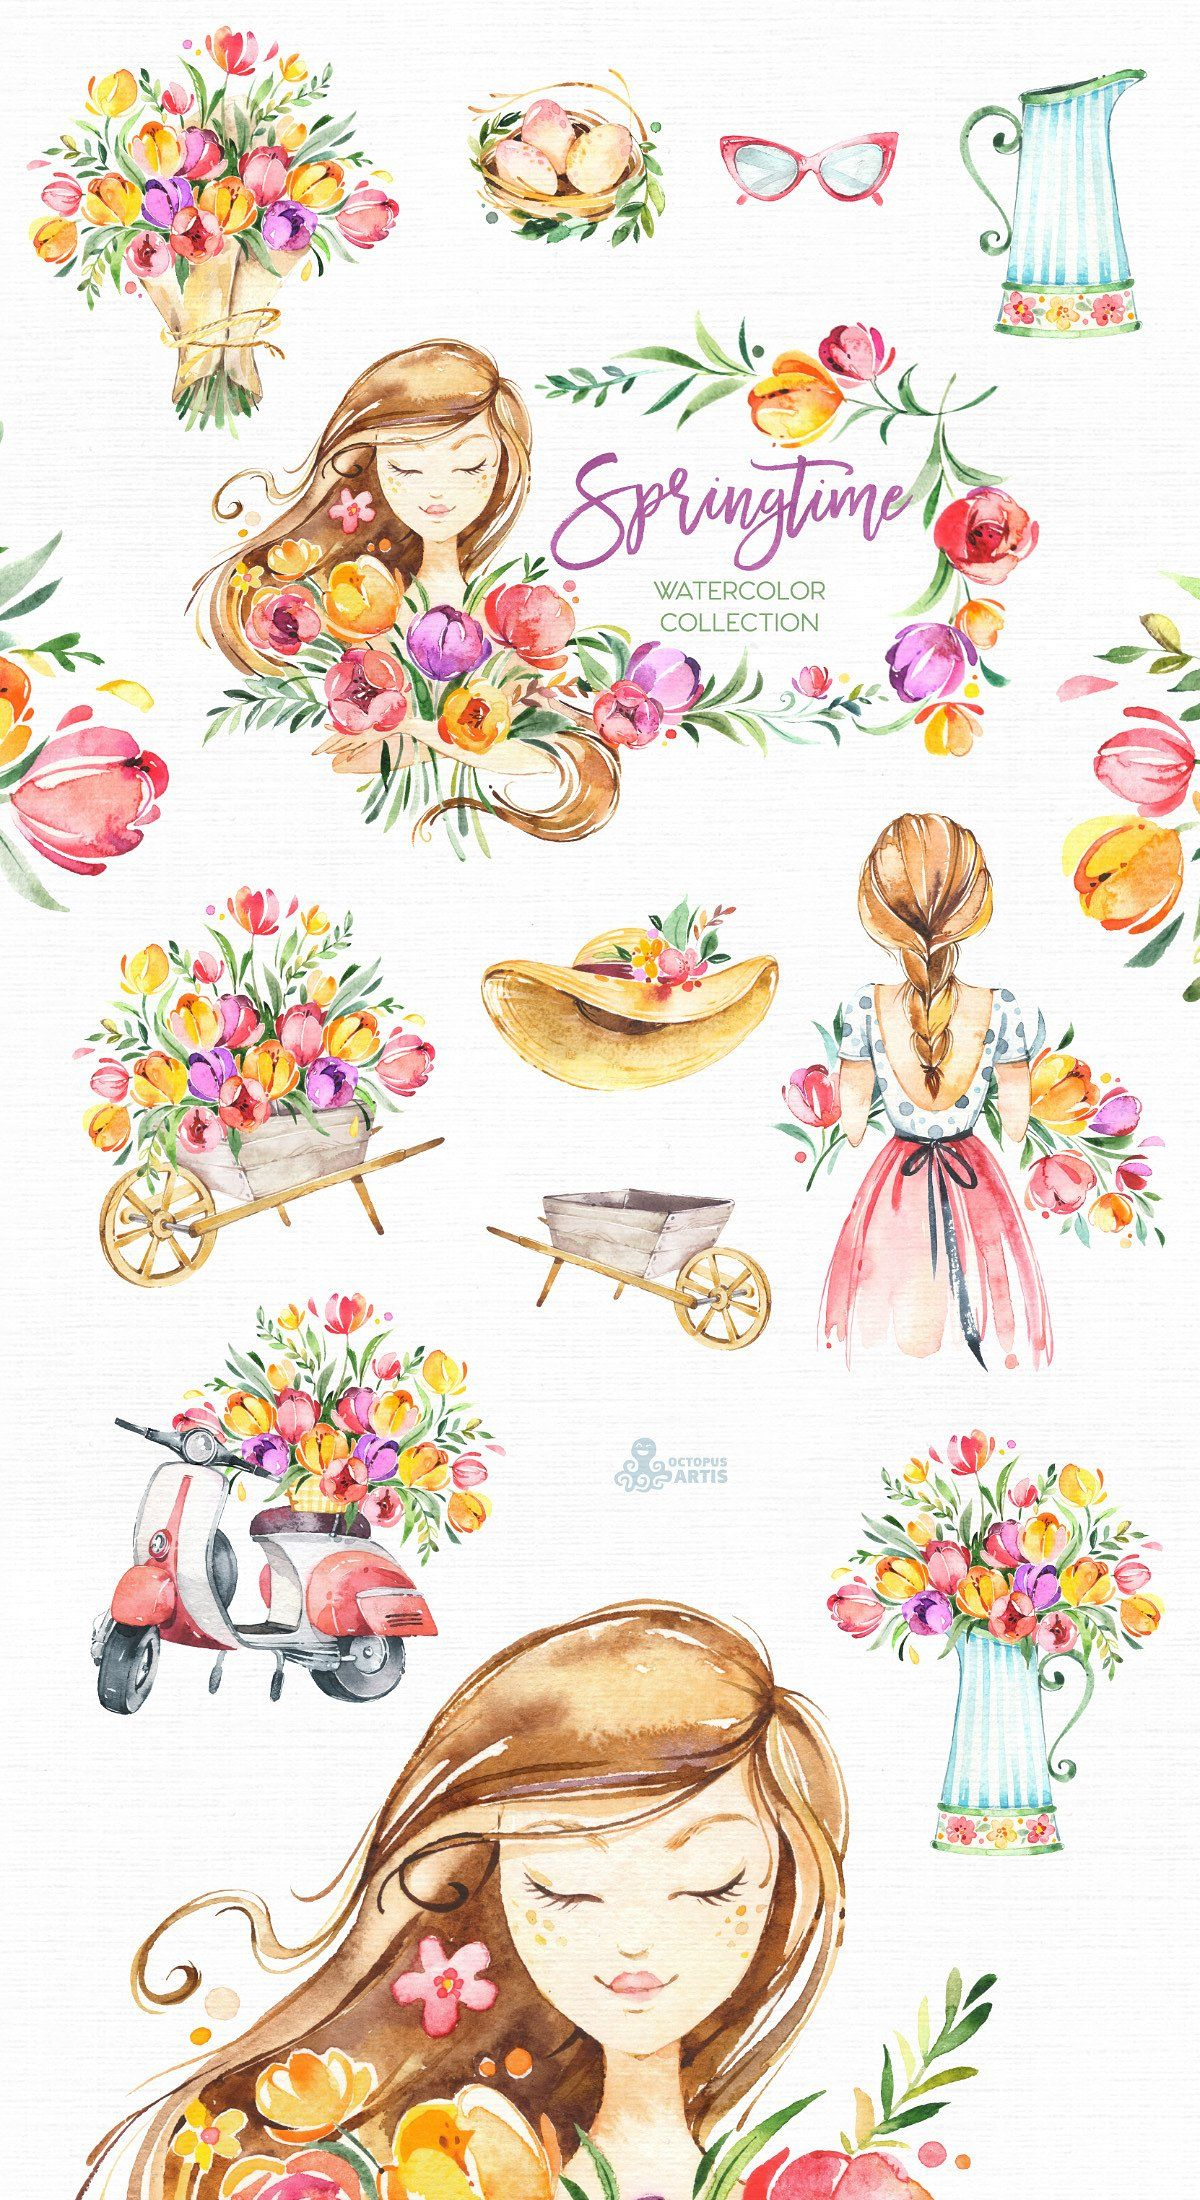 Springtime Watercolor Collection Spring Illustration